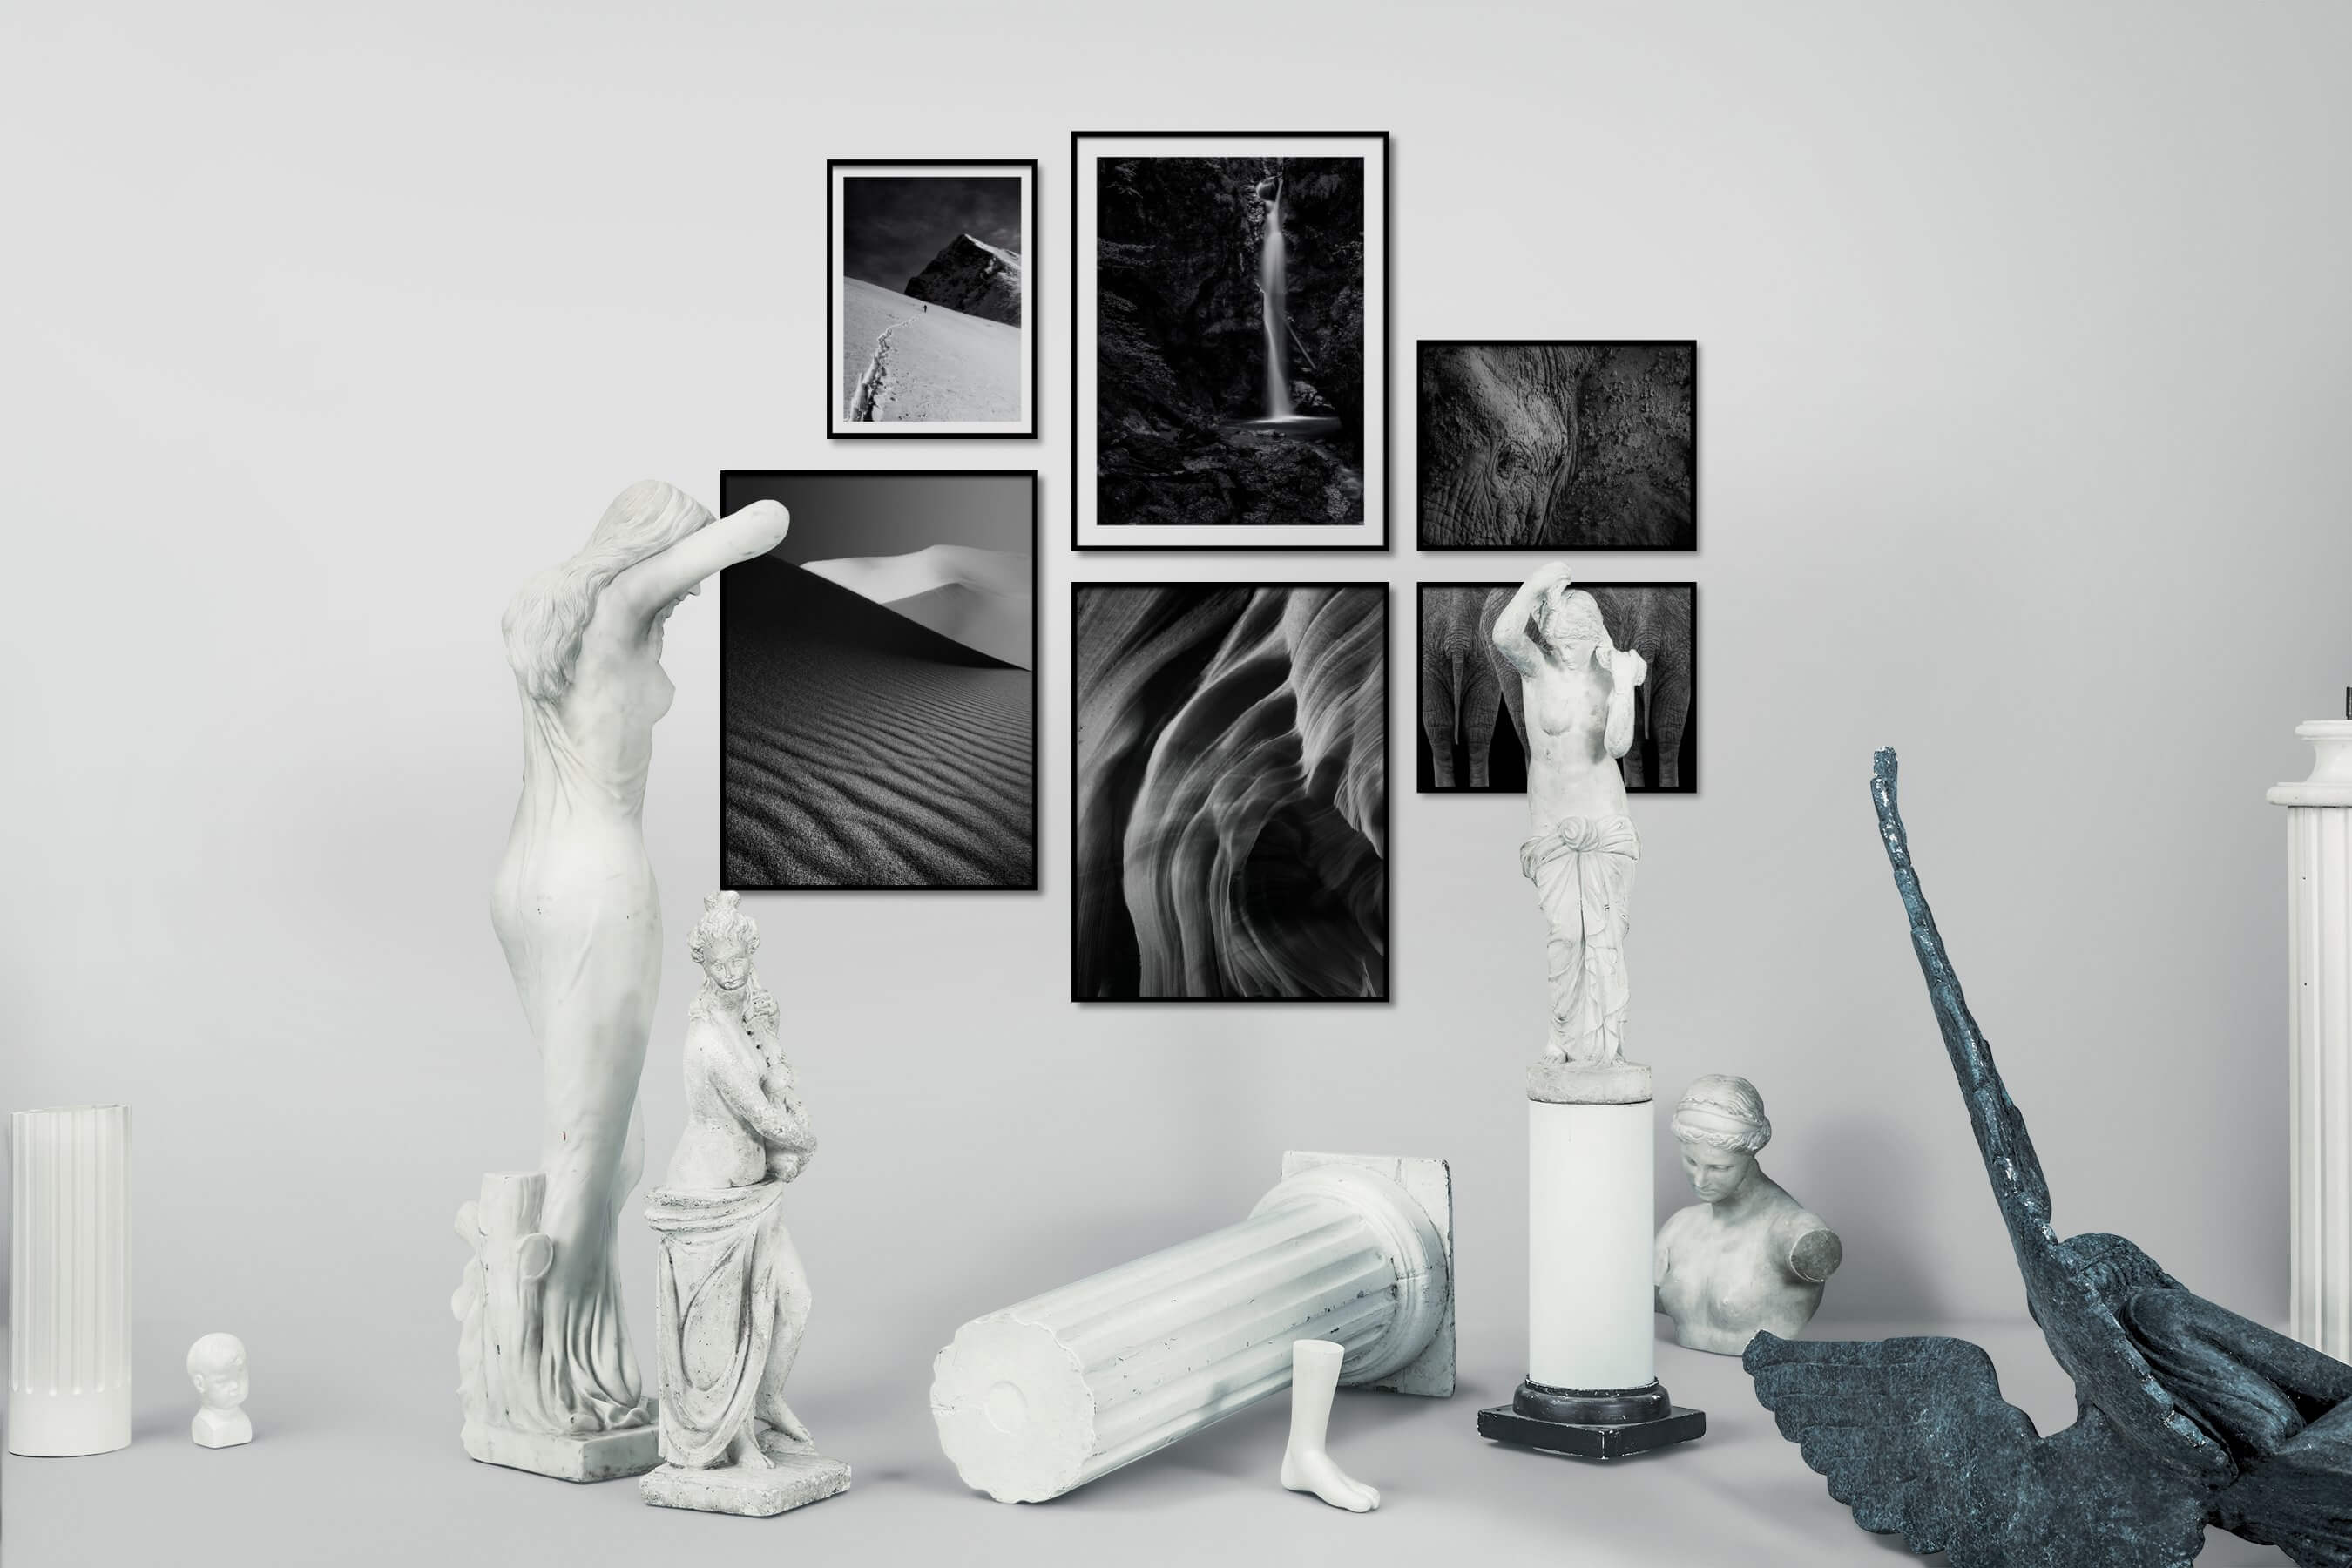 Gallery wall idea with six framed pictures arranged on a wall depicting Black & White, For the Moderate, Nature, Mindfulness, For the Minimalist, and Animals